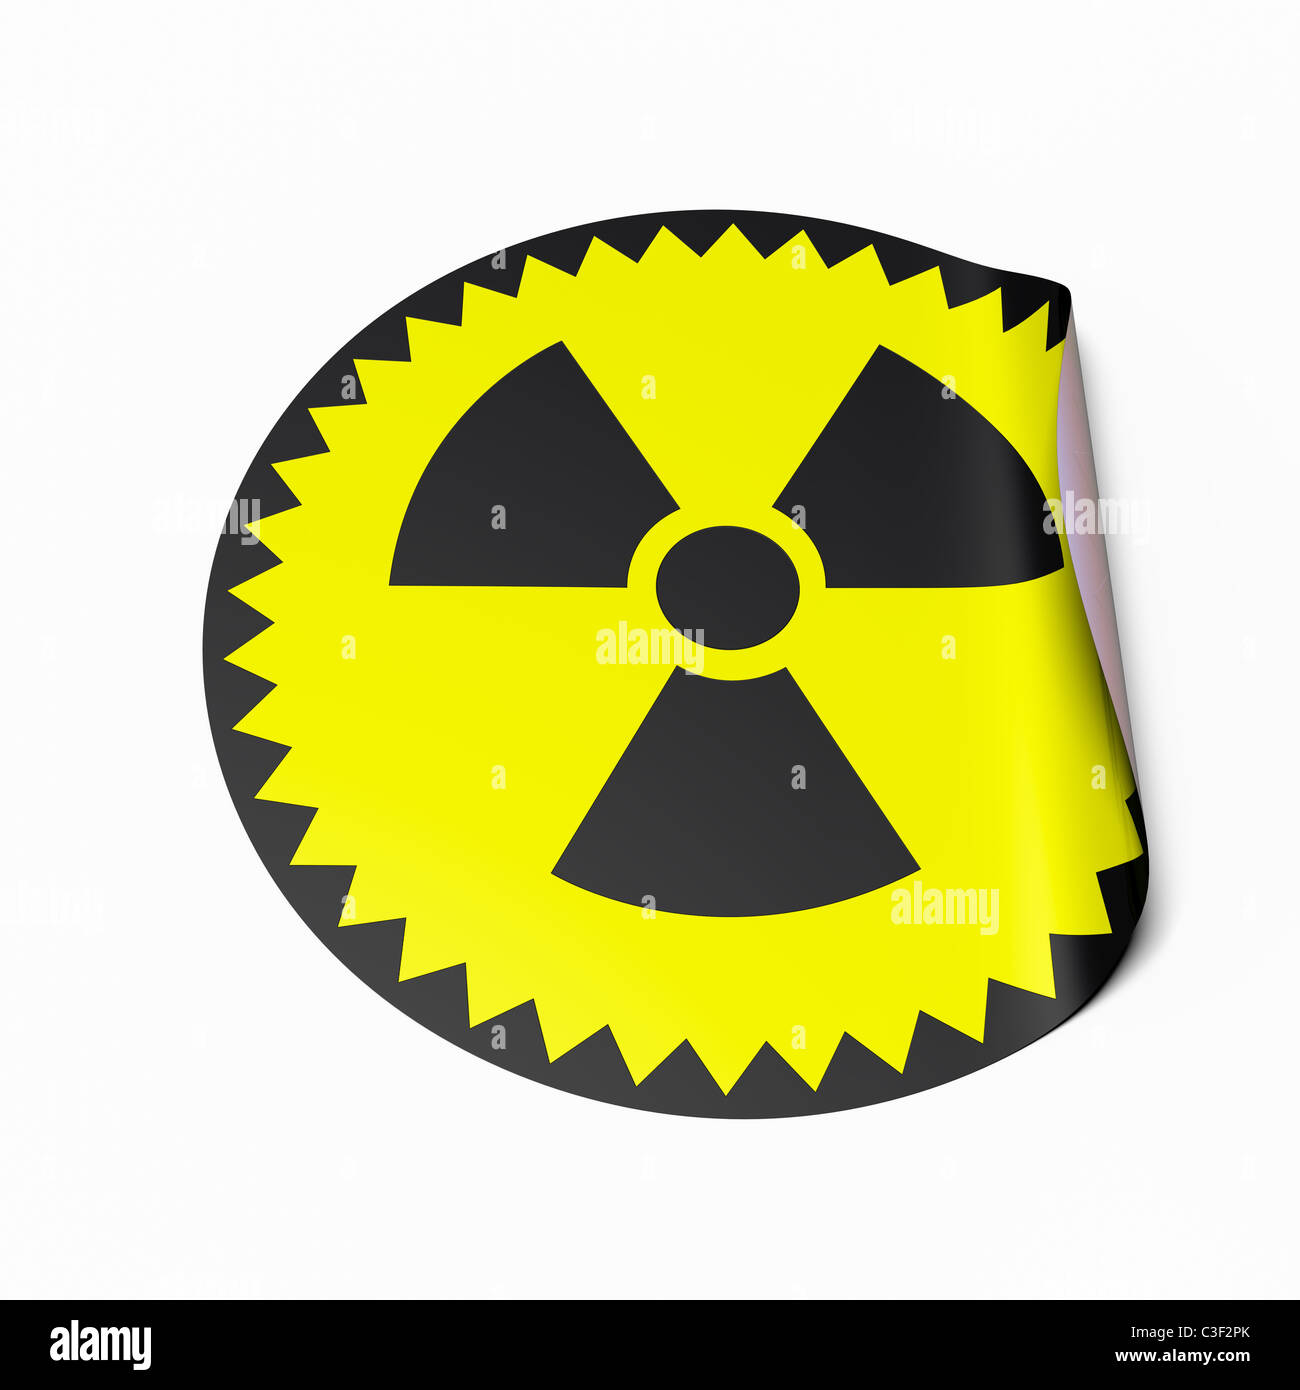 High resolution image of a sticker with radioactive symbol stock high resolution image of a sticker with radioactive symbol conceptual image for nuclear power or nuclear risk buycottarizona